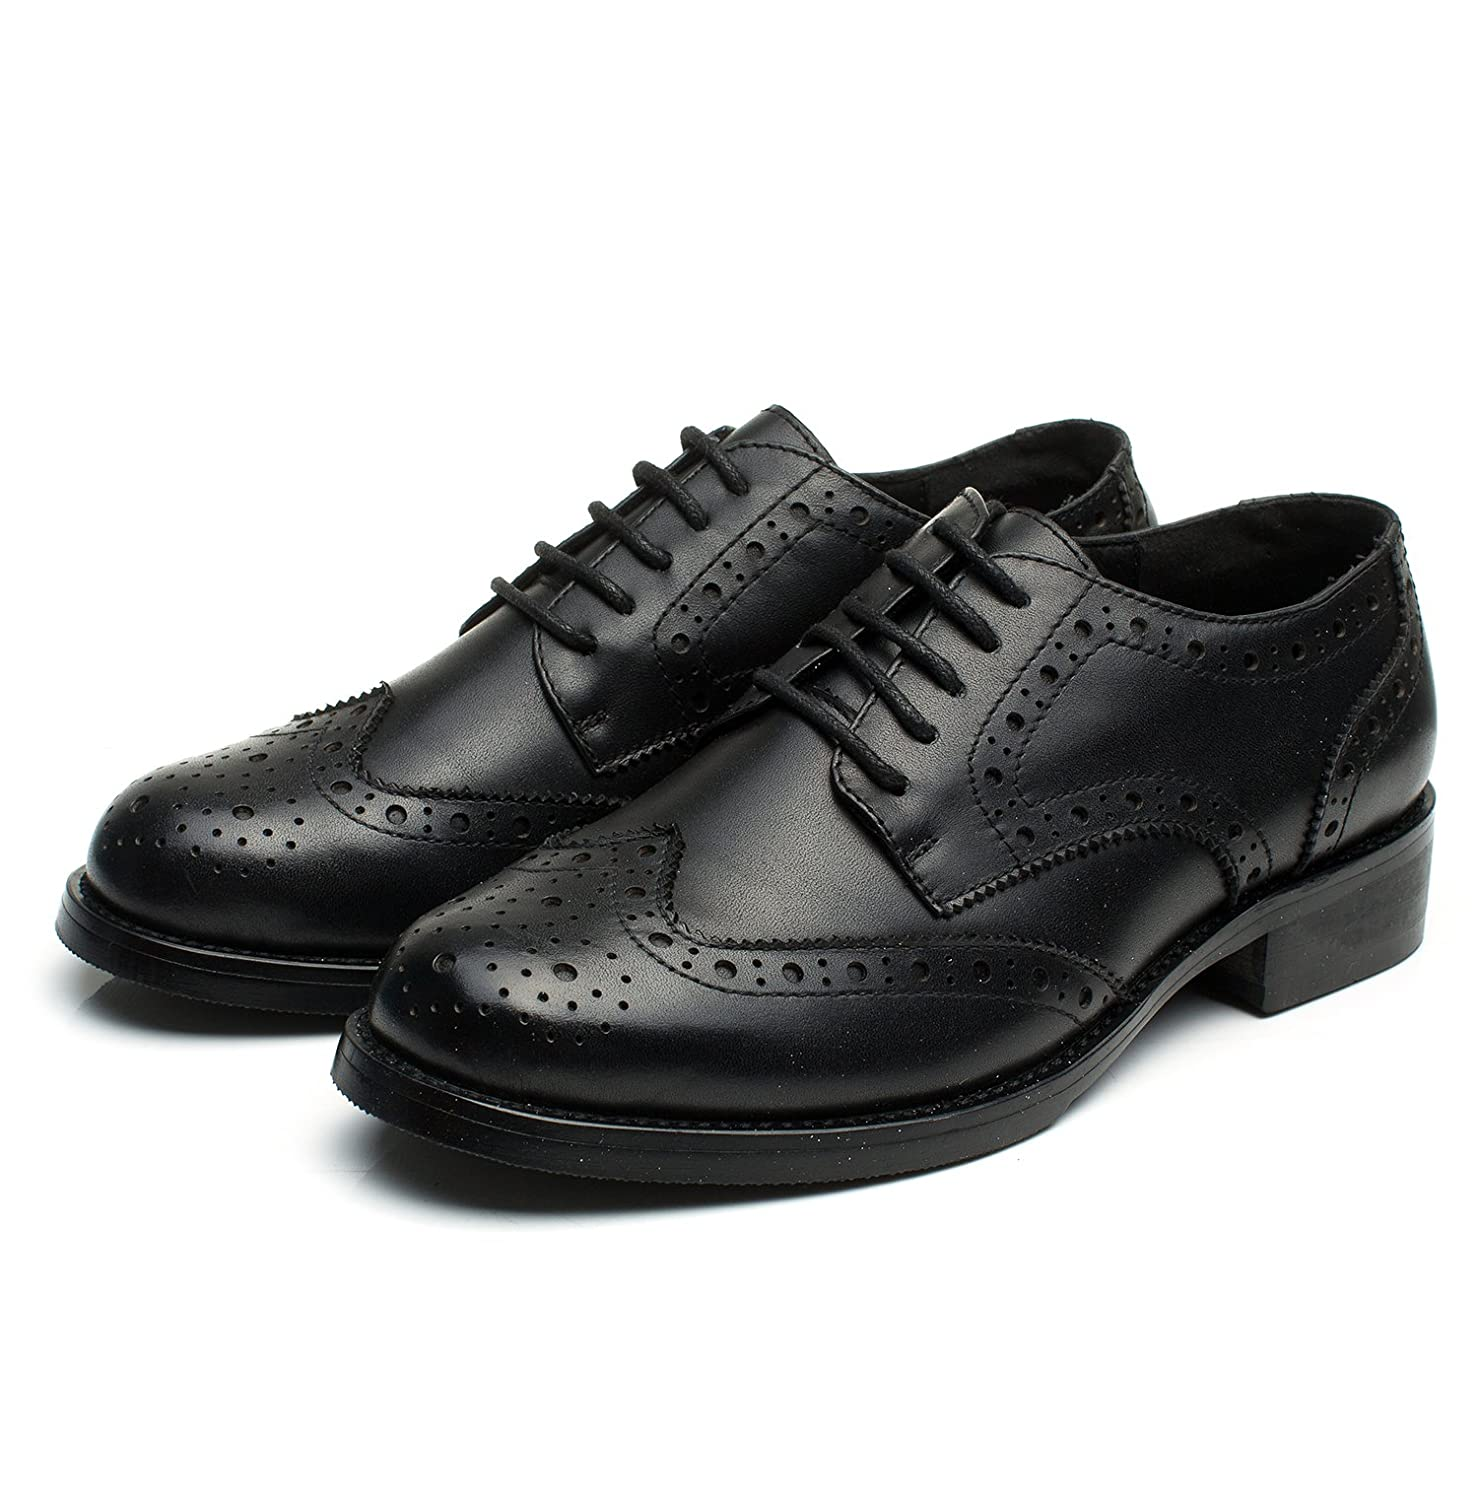 8d8c108a2b Shoes U-lite Womens Perforated Lace-up Wingtip Leather Flat Oxfords Vintage  Oxford Shoes Brogues Uliteoxford003-PP